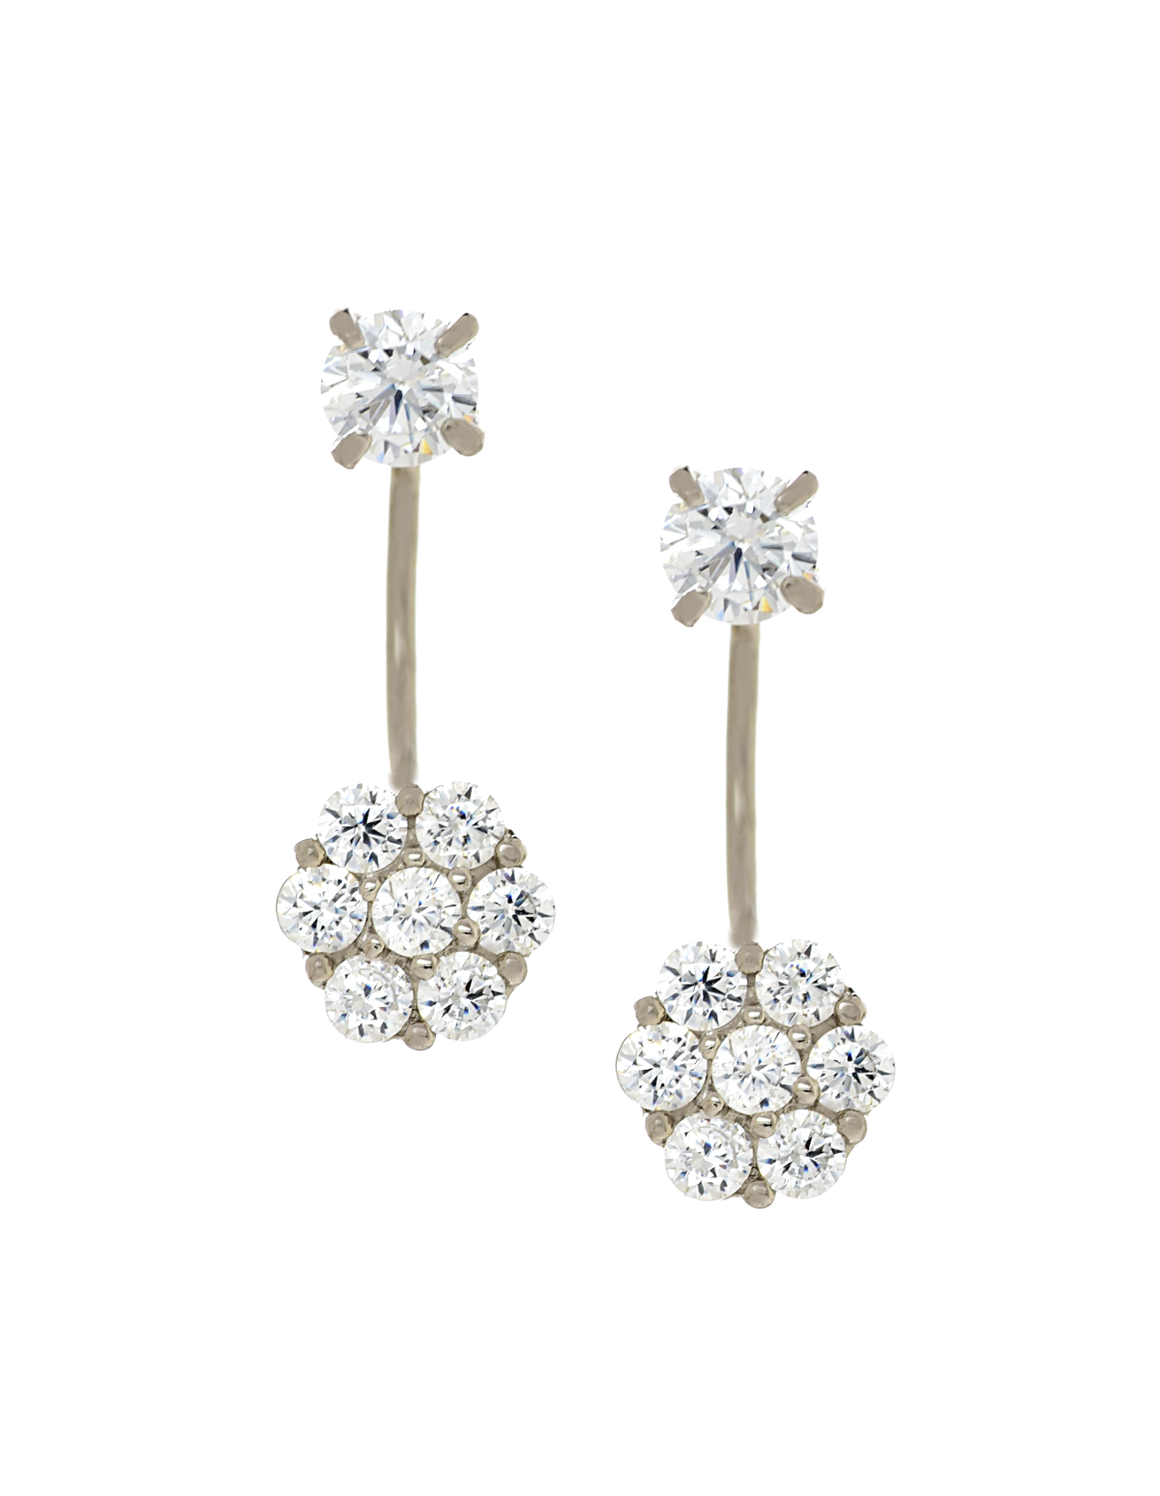 14K White Gold Flower Cluster CZ Telephone Earrings - Anny Gabriella NY